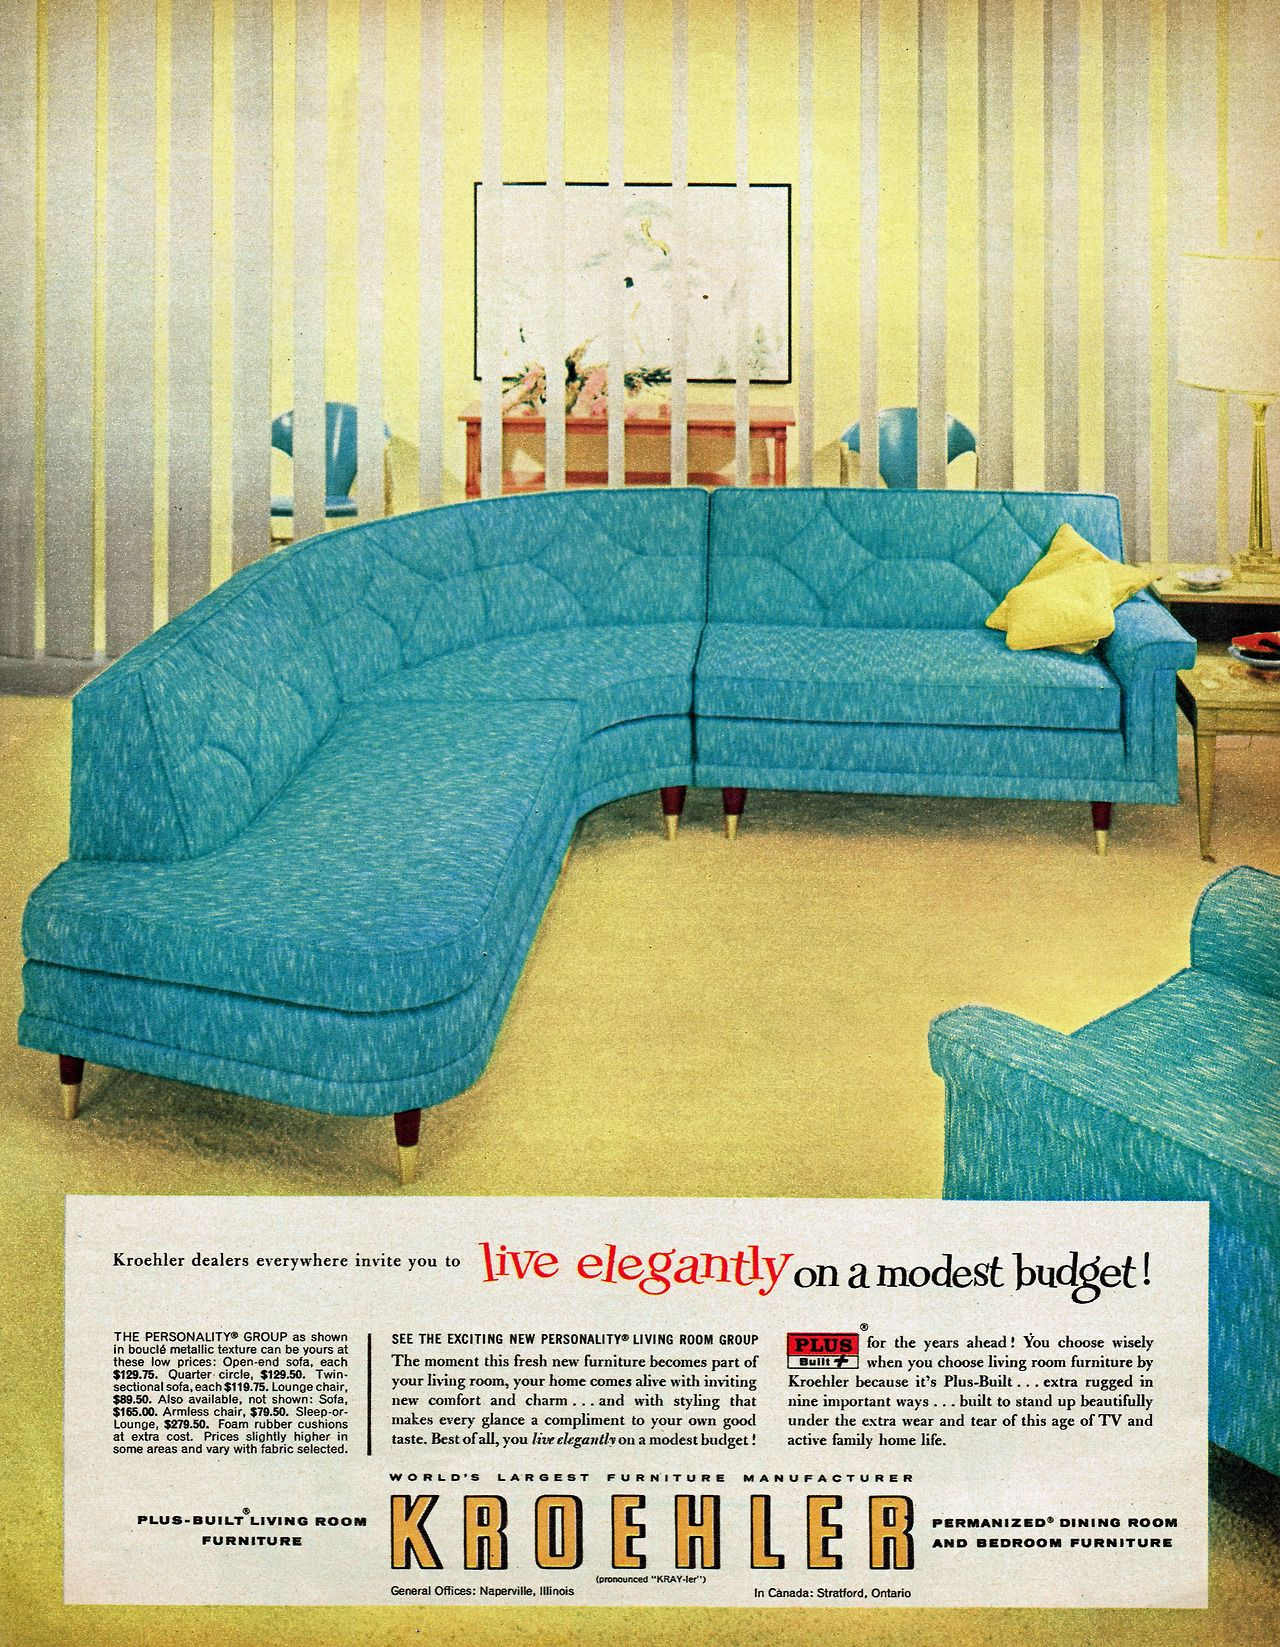 Kroehler Furniture 1957 Retro Mid Century Decor Mid Century